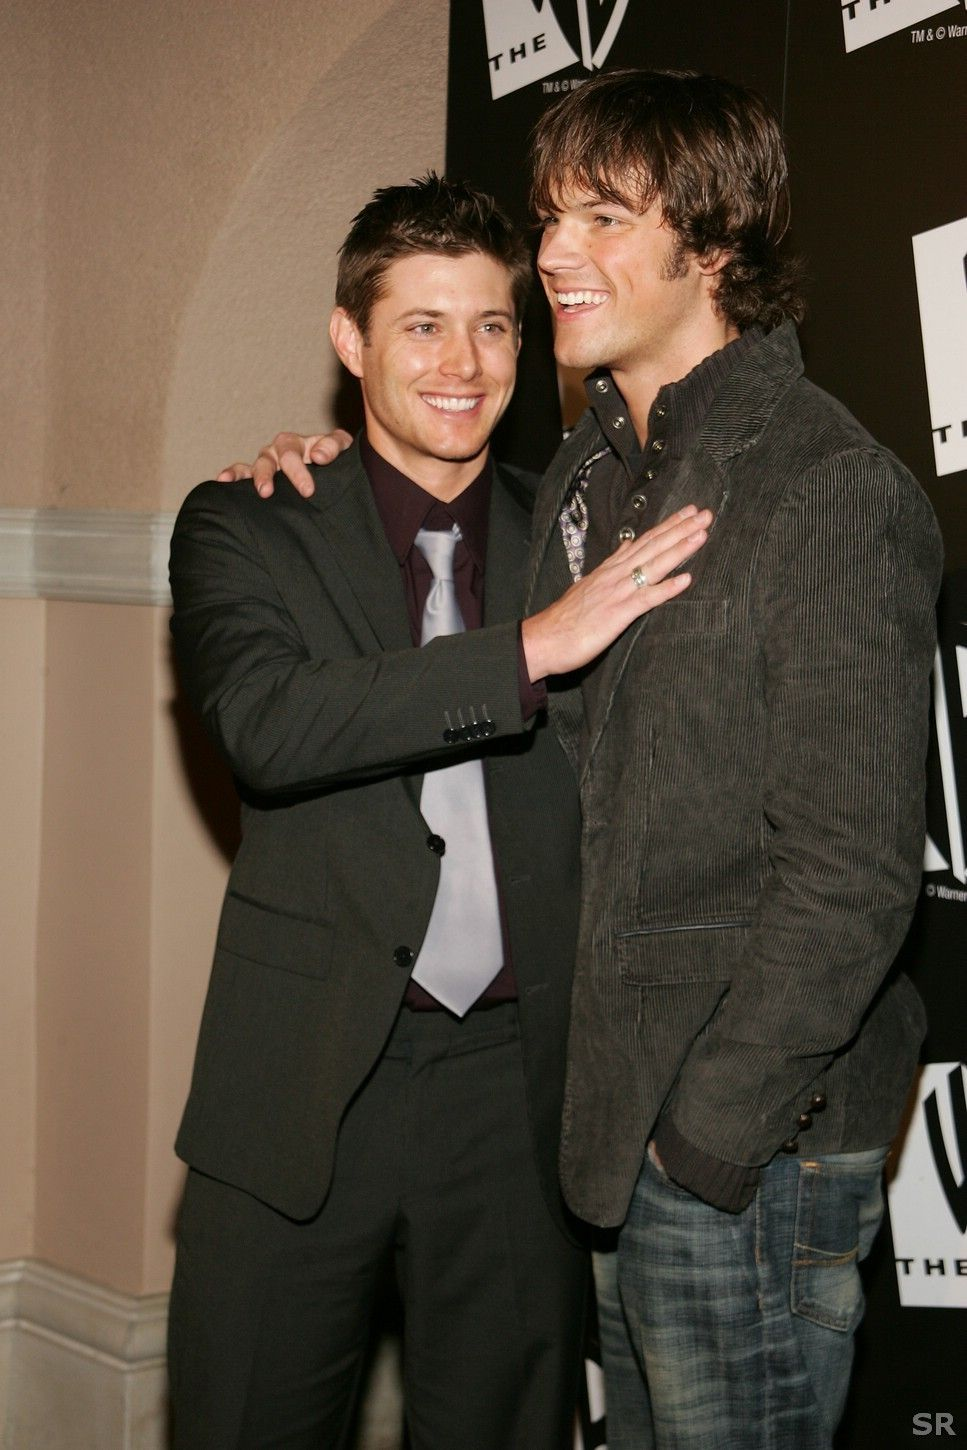 Jensen ackles jared padalecki jared and i are lucky